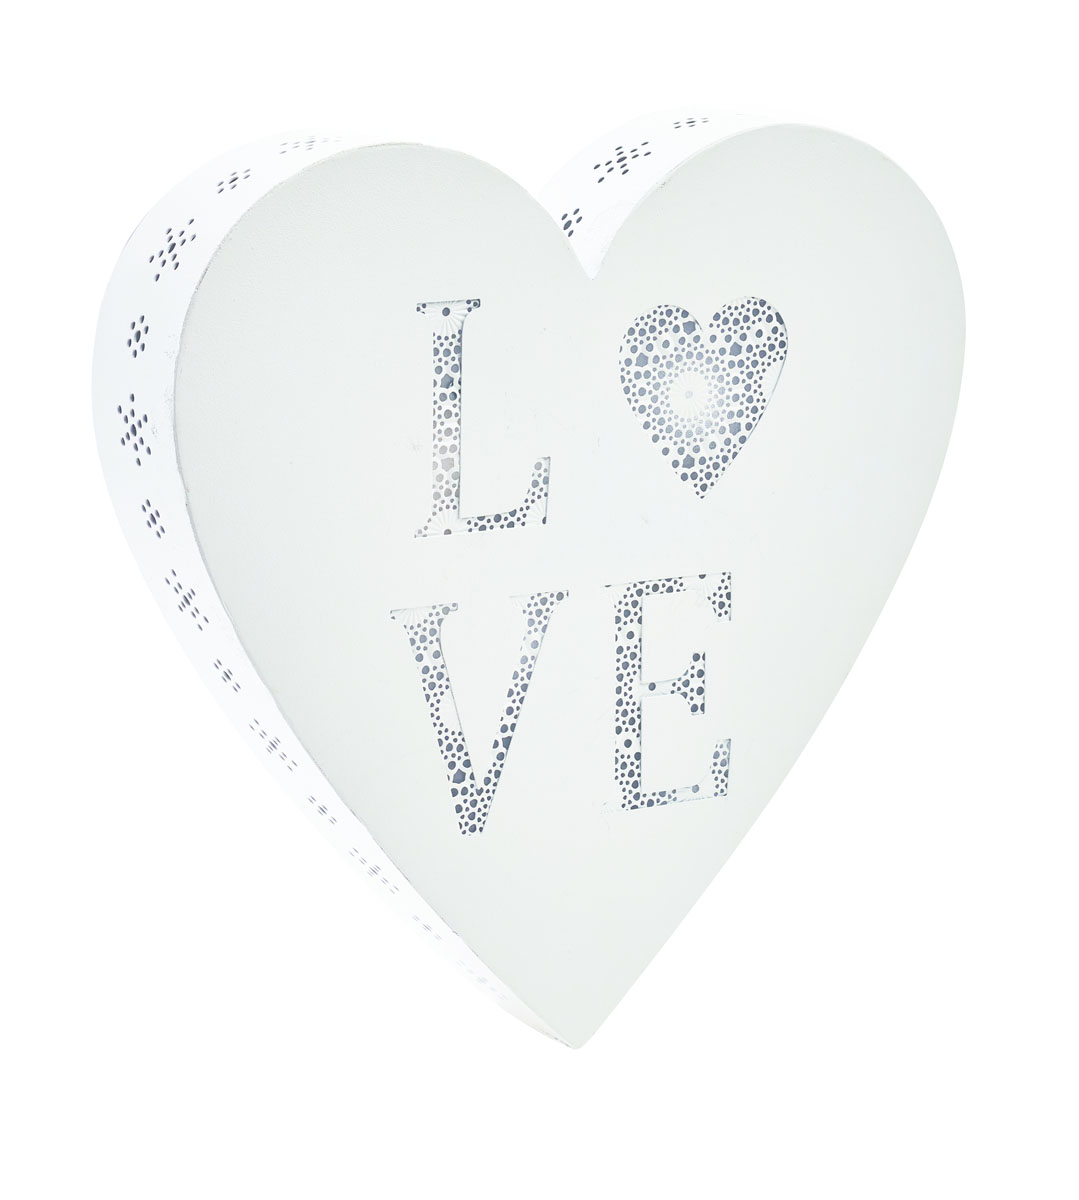 Декоративное настенное украшение Gardman Love Heart, с LED подсветкой, 25,5 x 5 х 25,5 см ougold girl cylindrical character zipper new fashion coin purses mini portable headphones cute zero wallets